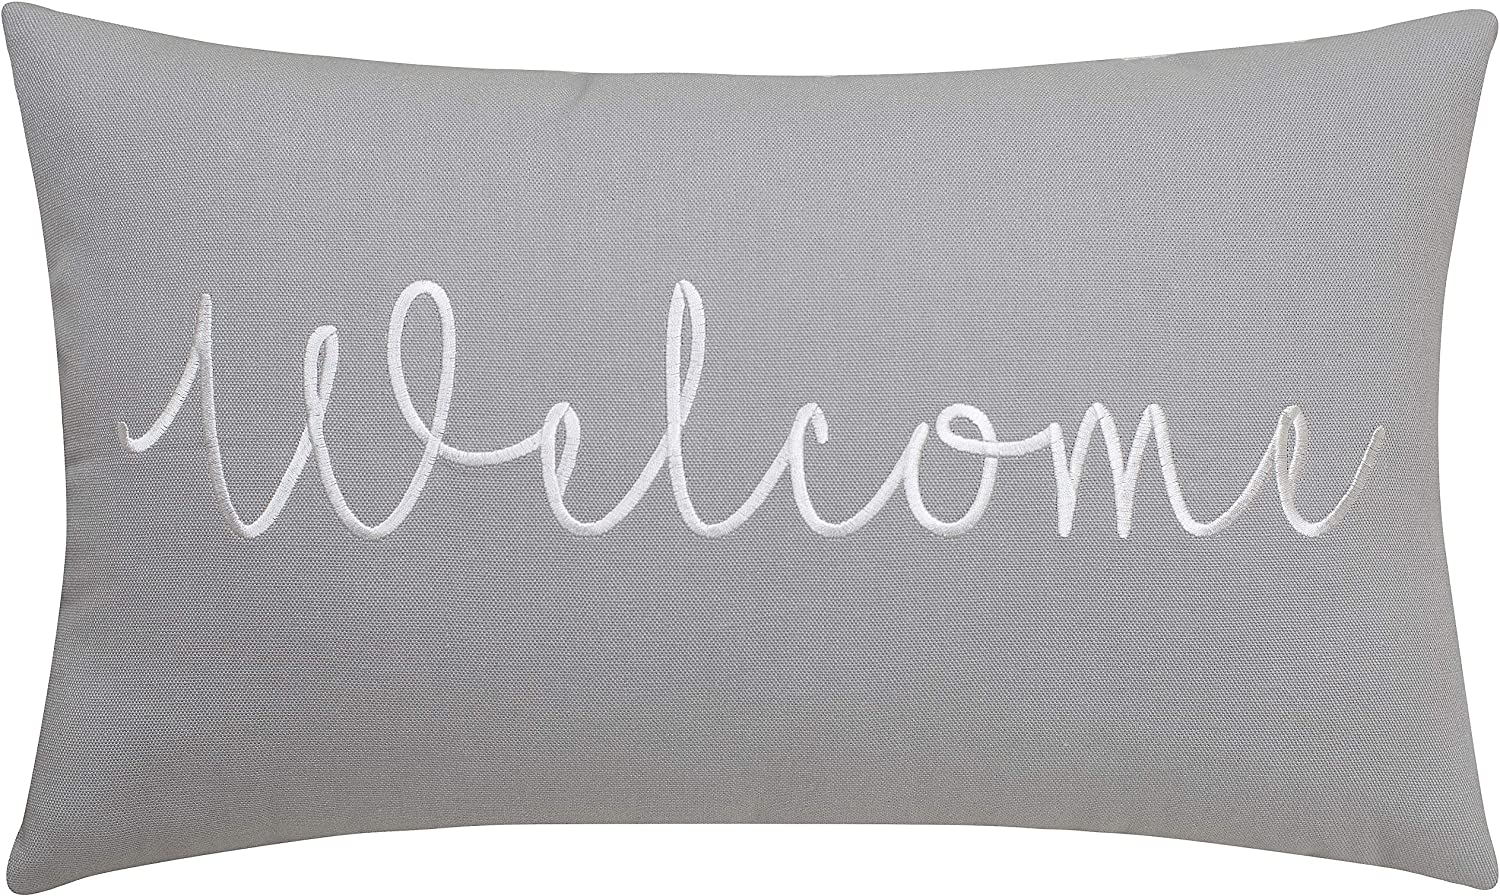 EURASIA DECOR Safety and NEW before selling trust Welcome Embroidered Lumbar Throw Pillow Accent Cov